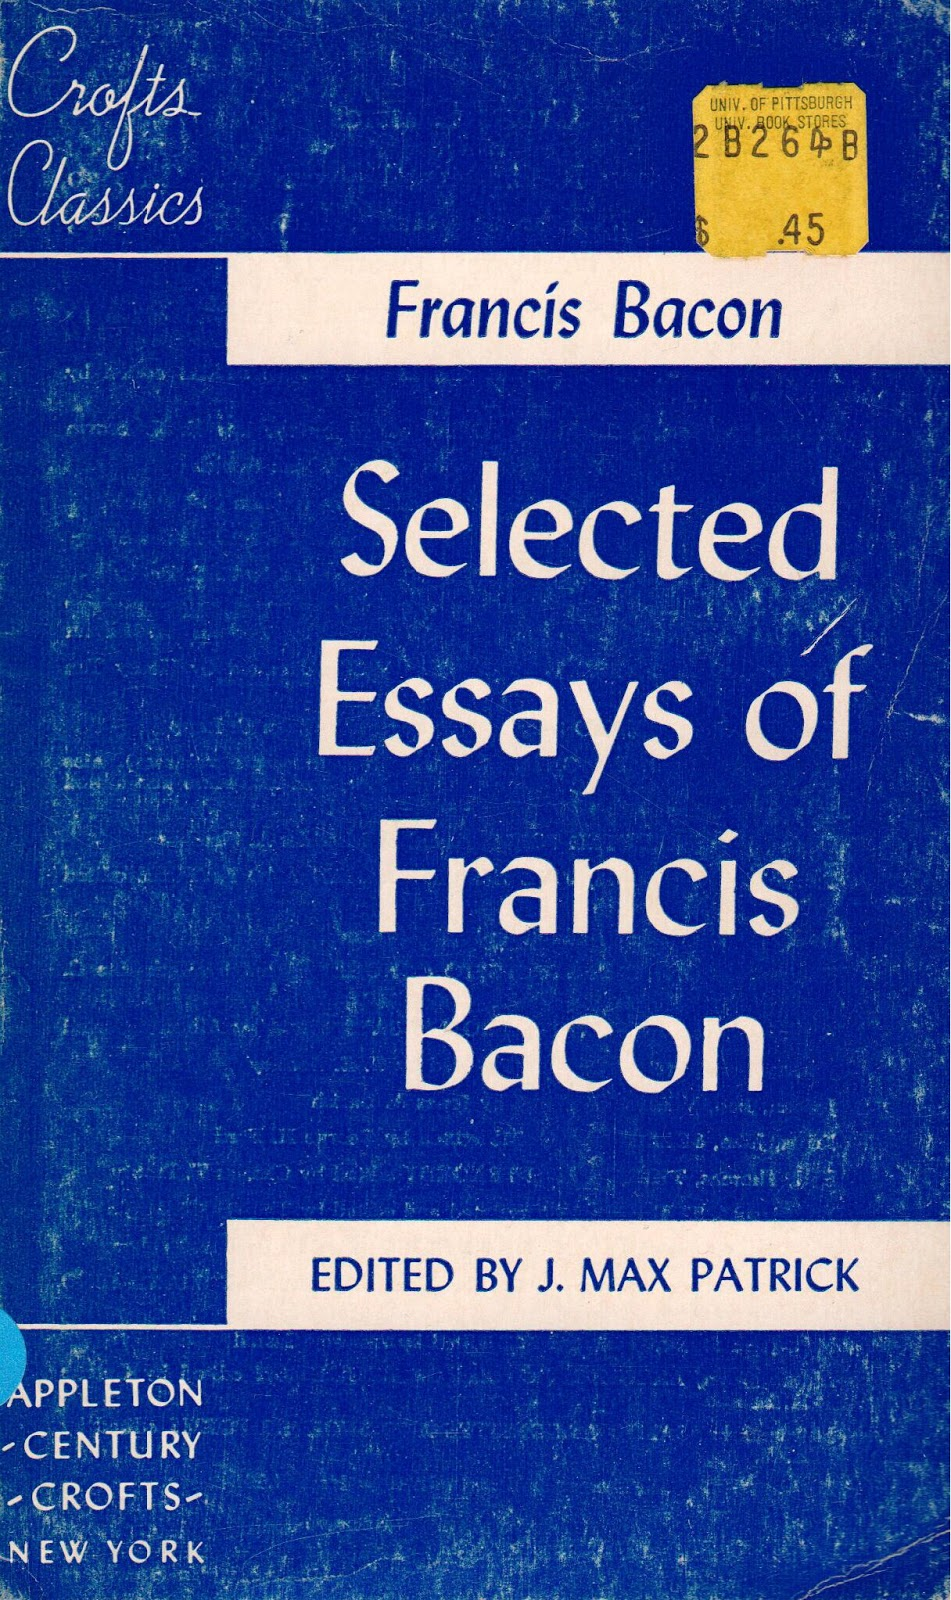 problems with bacons essays Says hudson regarding bacon's essays he shows an extraordinary insight regarding the problems that men face in life but his wisdom is only.